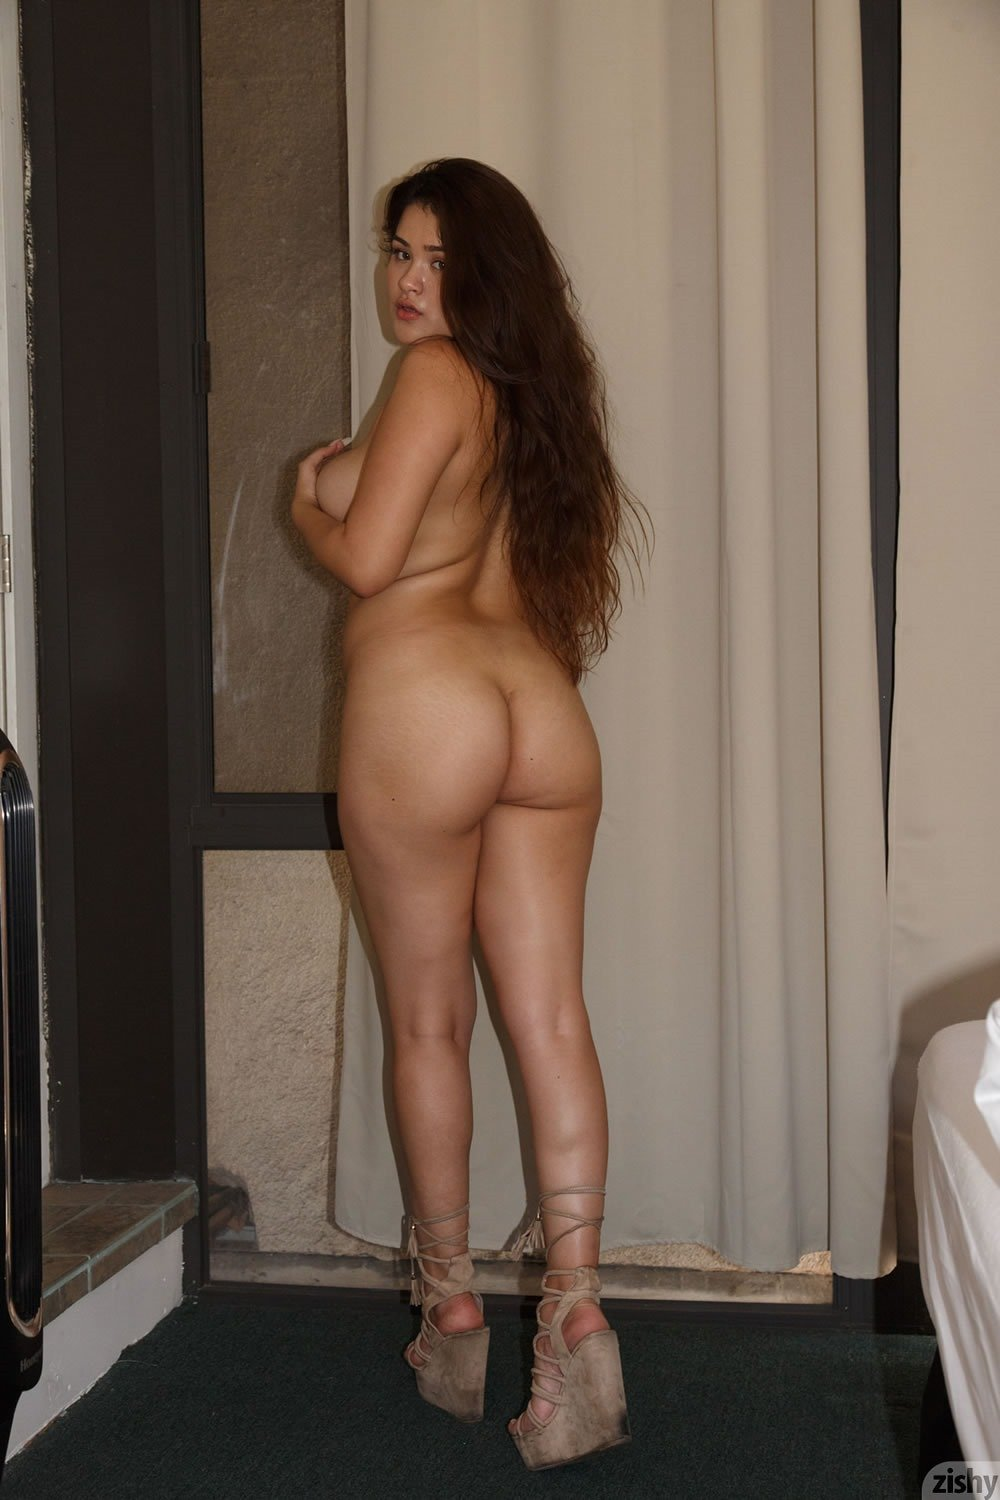 Briana lee strips out her flirt panties by jls - 1 part 4